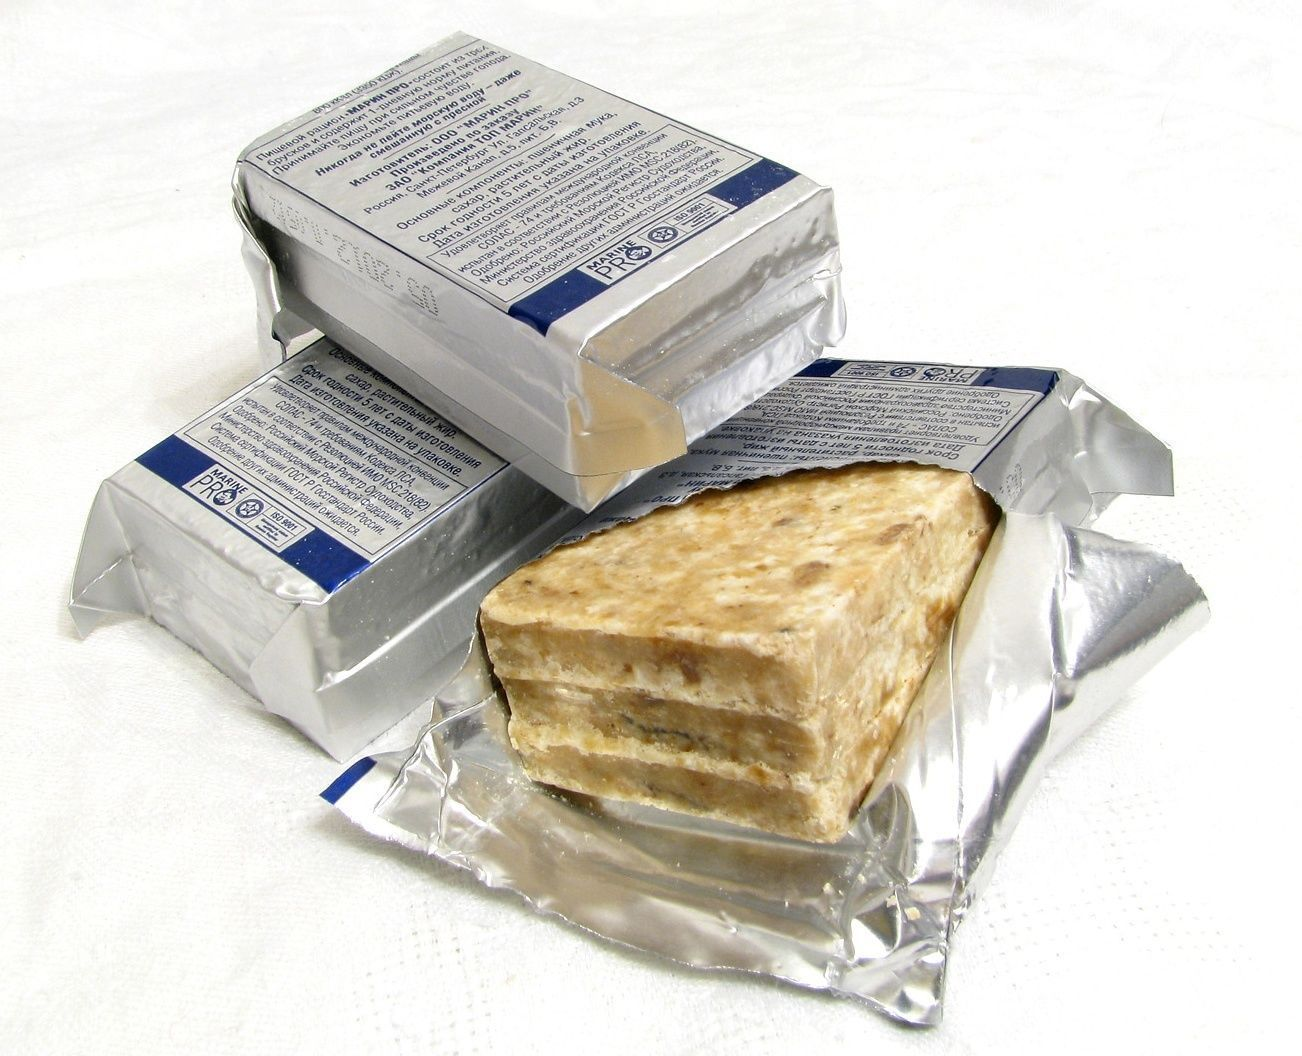 72h Russian Army Military Emergence Mre Rations Survival Food Bars Daily Pack Military Food Food Emergency Food